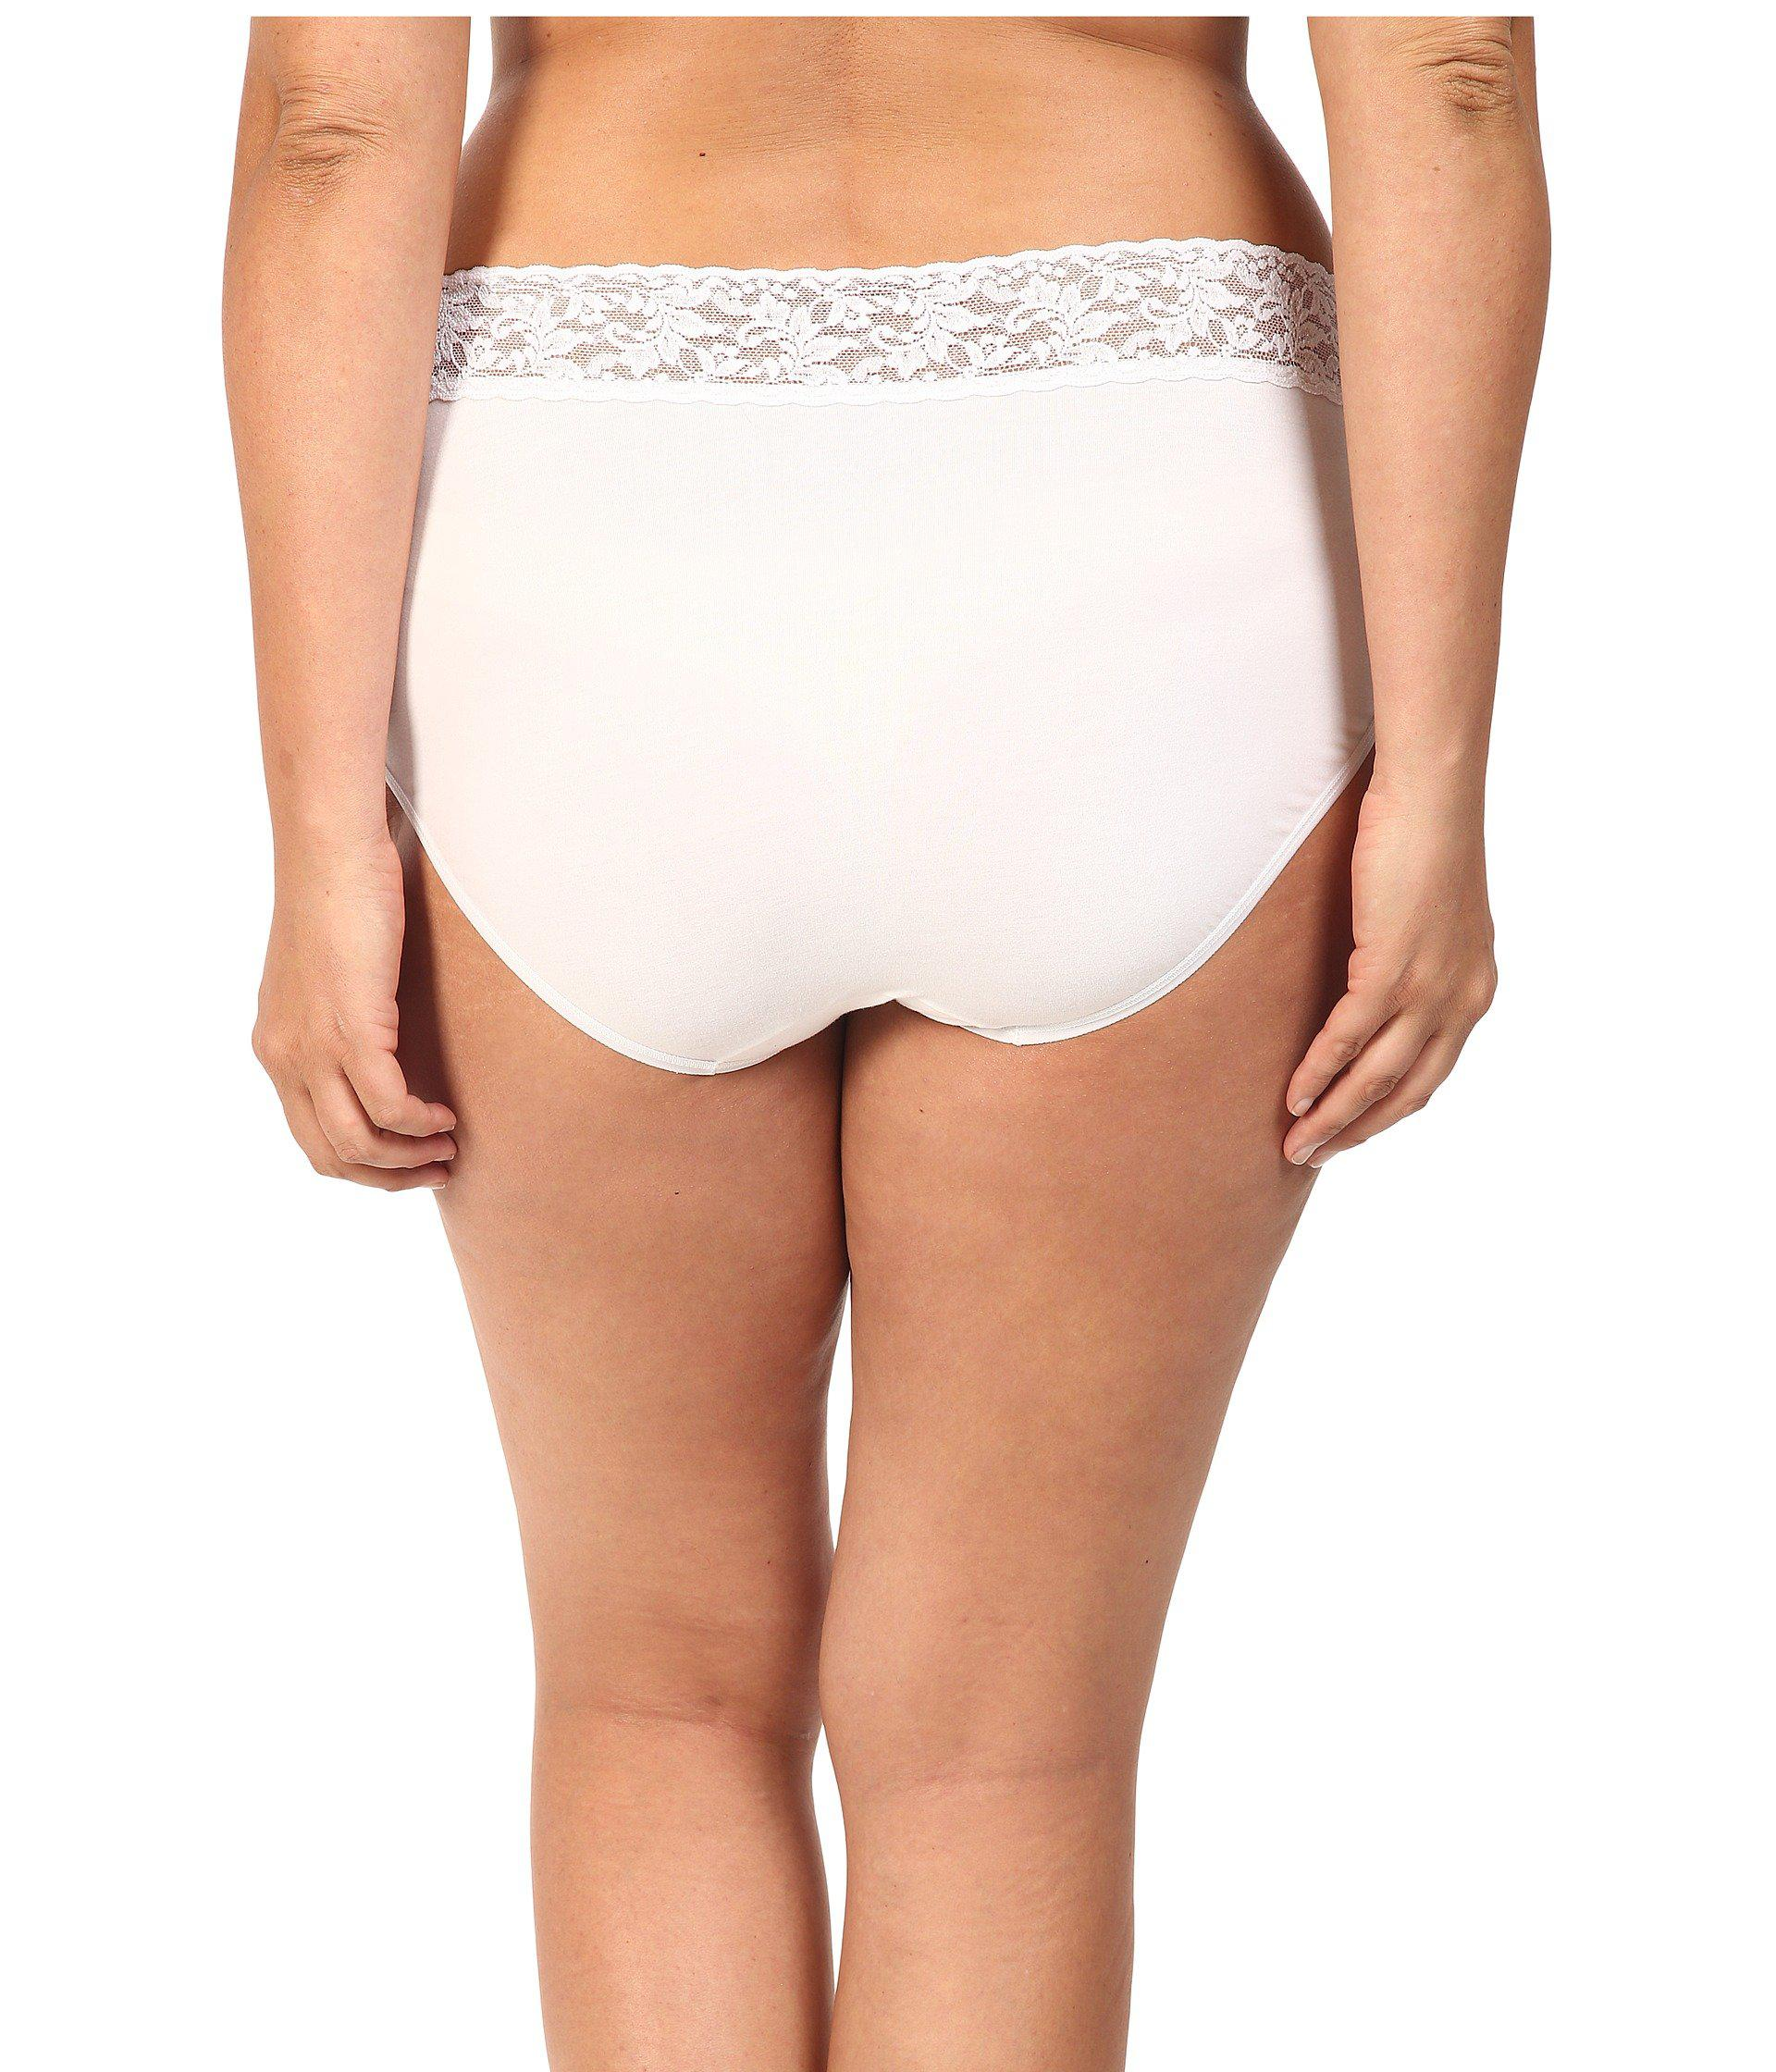 bb989dc80d5 Hanky Panky - White Plus Size Organic Cotton Signature Lace French Brief  (chai) Women s. View fullscreen